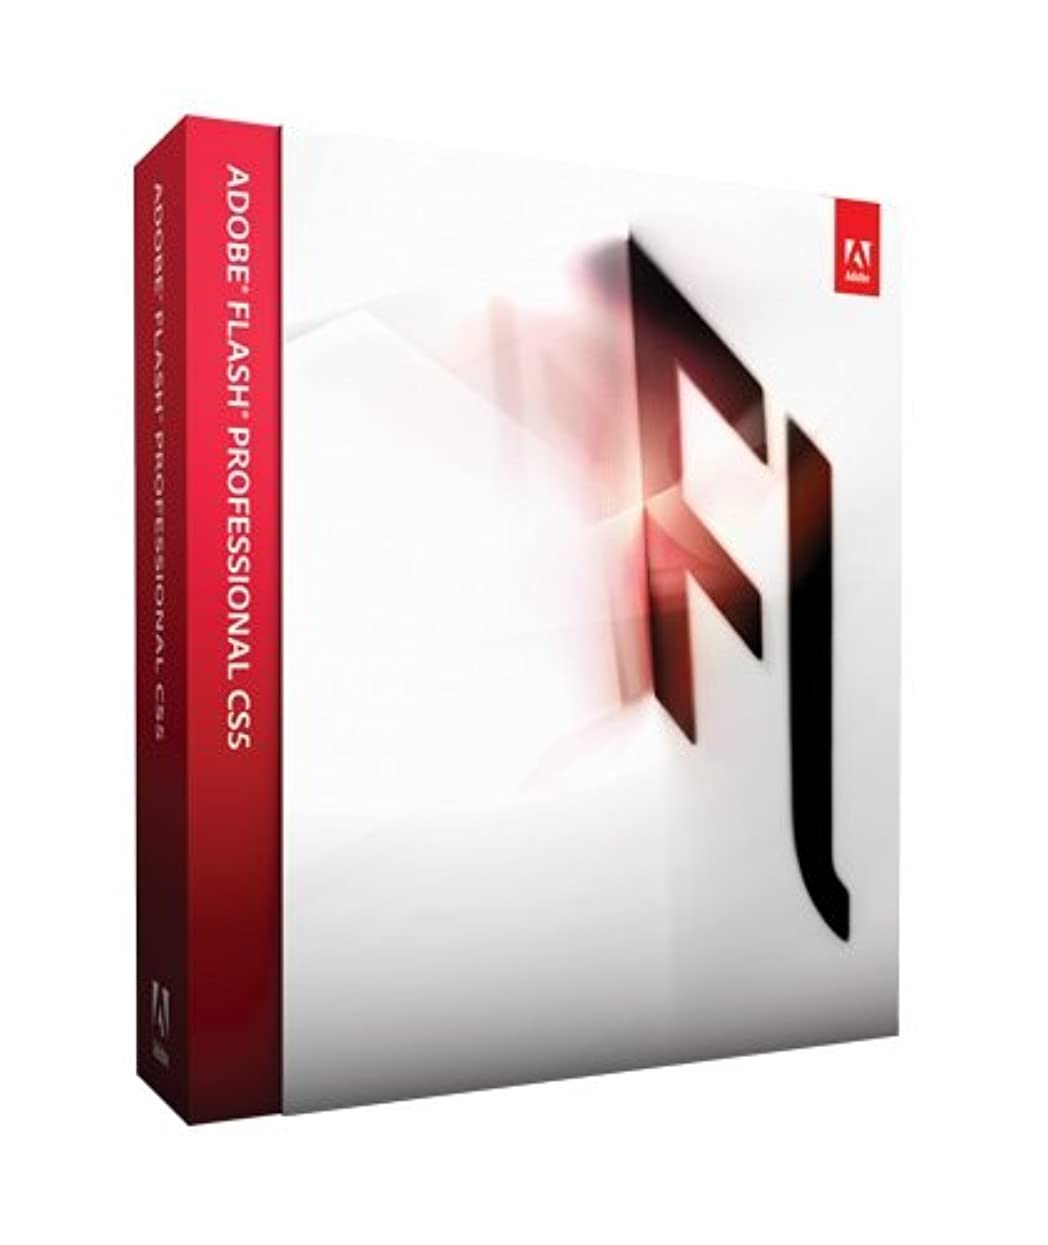 Adobe Flash Professional CS5 Macintosh版 (旧製品)